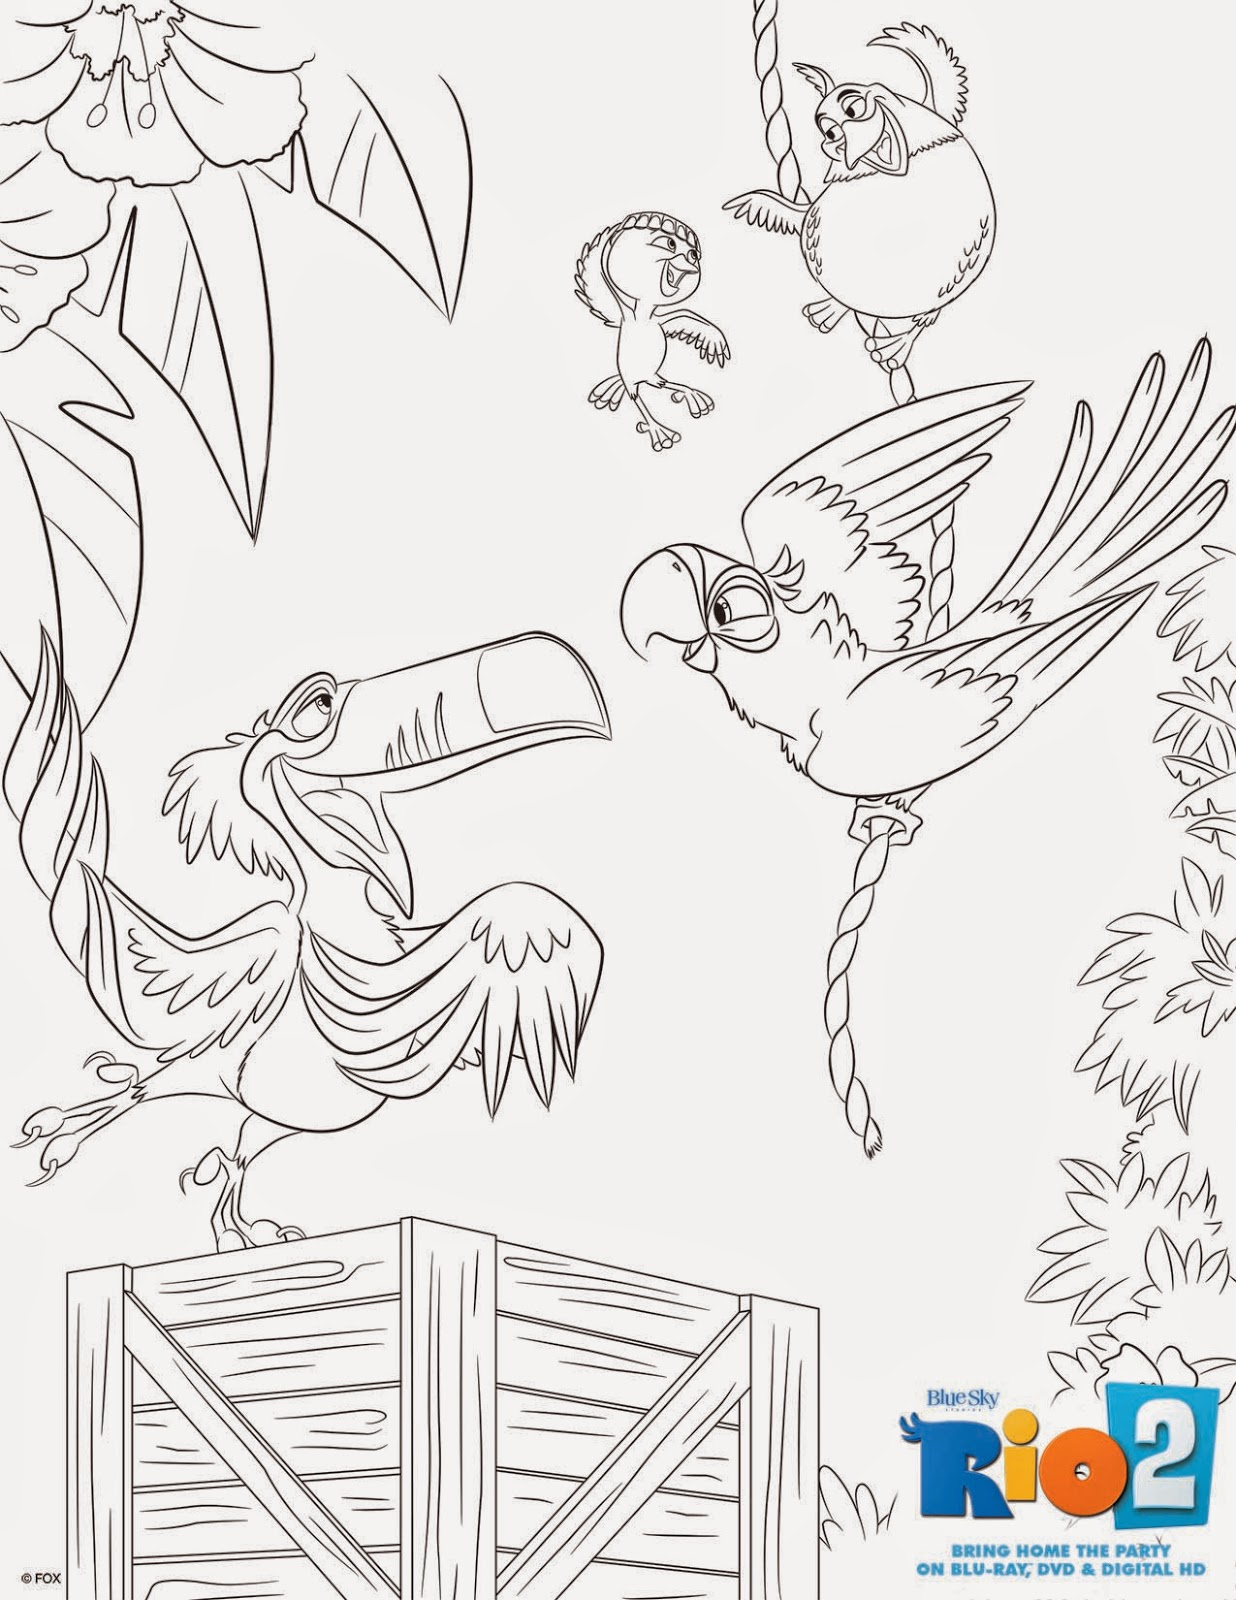 a geek daddy free rio 2 coloring pages u0026 bluray dvd digital